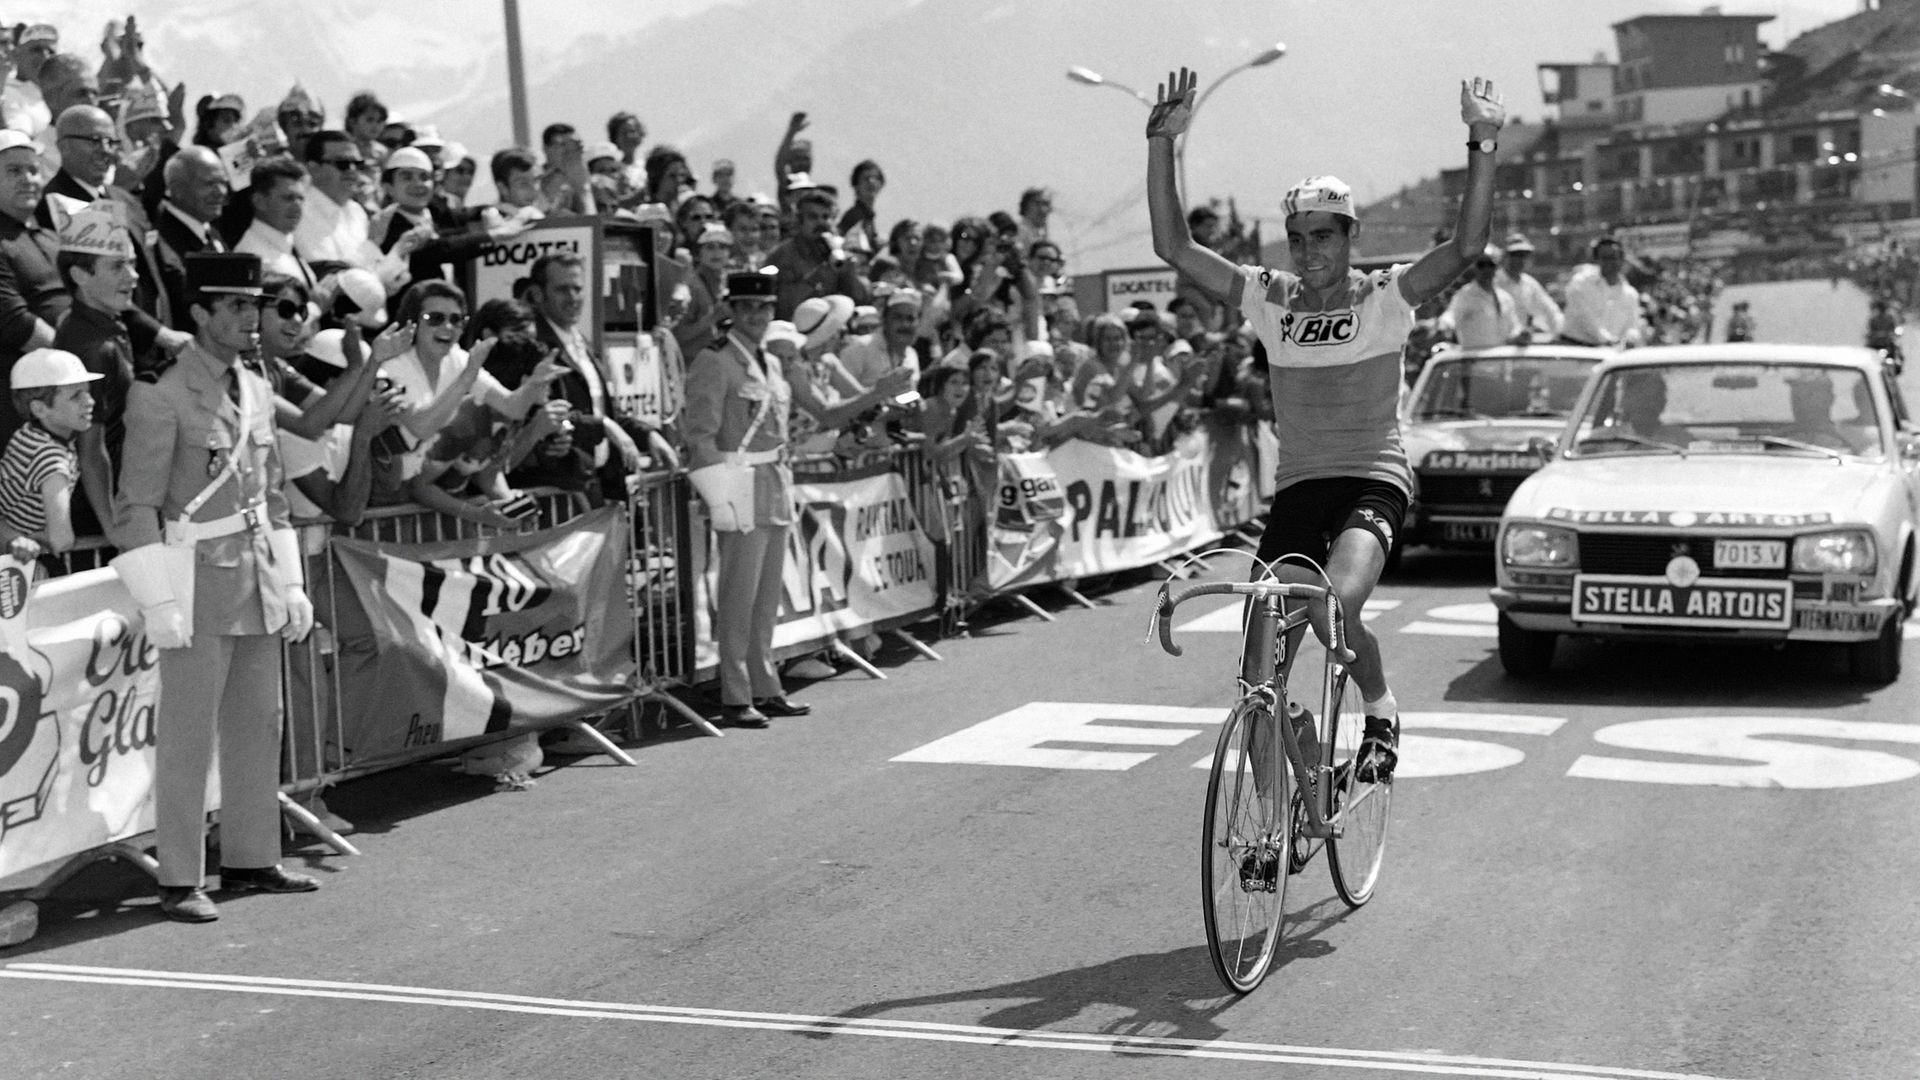 Spain's Luis Ocana crosses the finish line during the 11th stage of the Tour de France cycling race between Grenoble and Orcieres-Merlette in 1971 - Credit: AFP via Getty Images